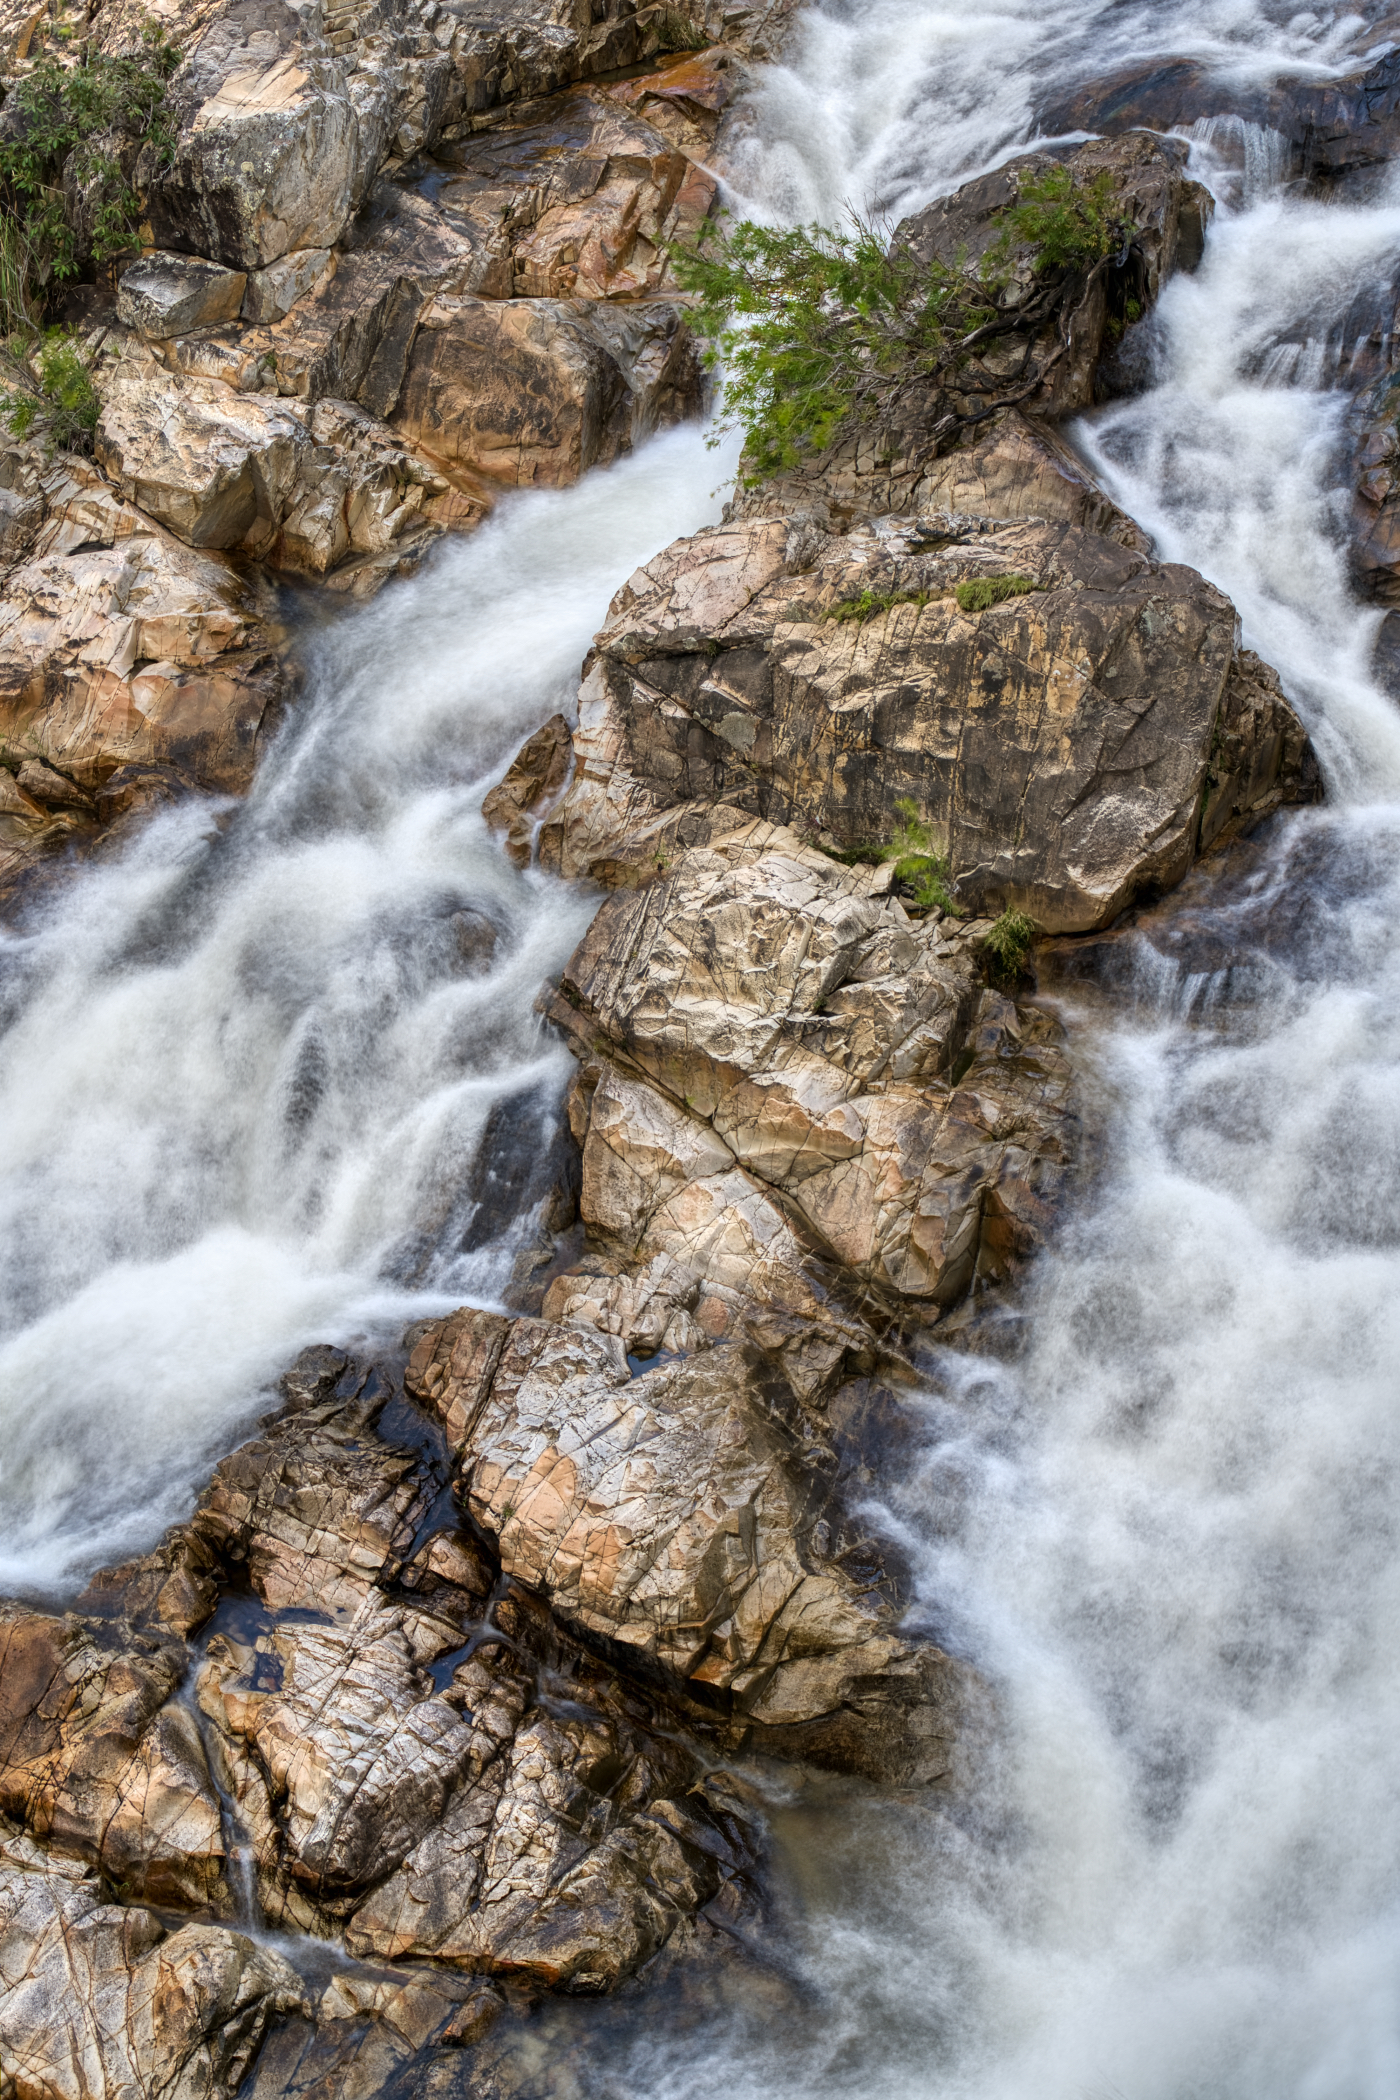 A small section of the falls with rocks protruding from the water.